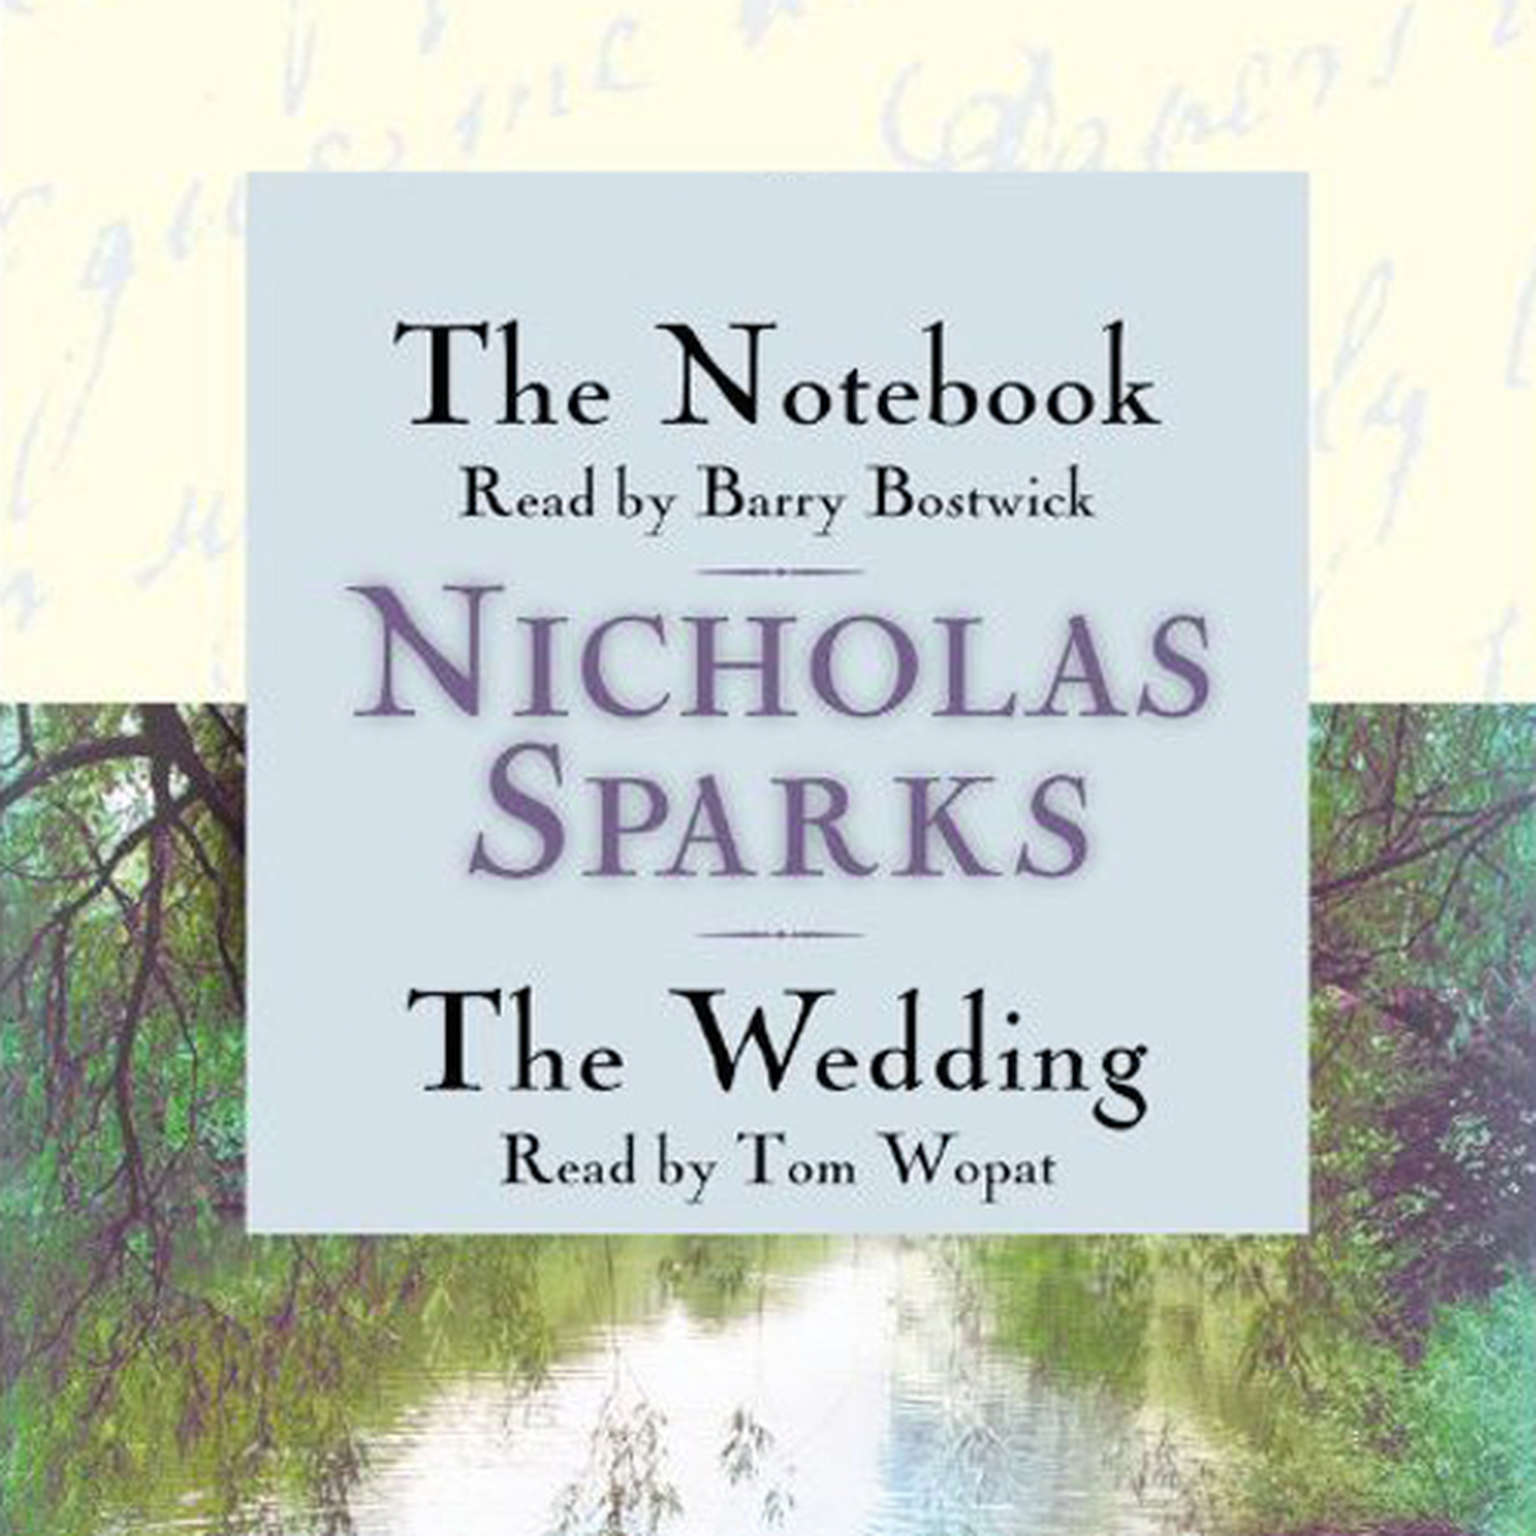 the notebook the wedding box set audiobook by nicholas extended audio sample the notebook the wedding box set featuring the unabridged audio recordings of the notebook